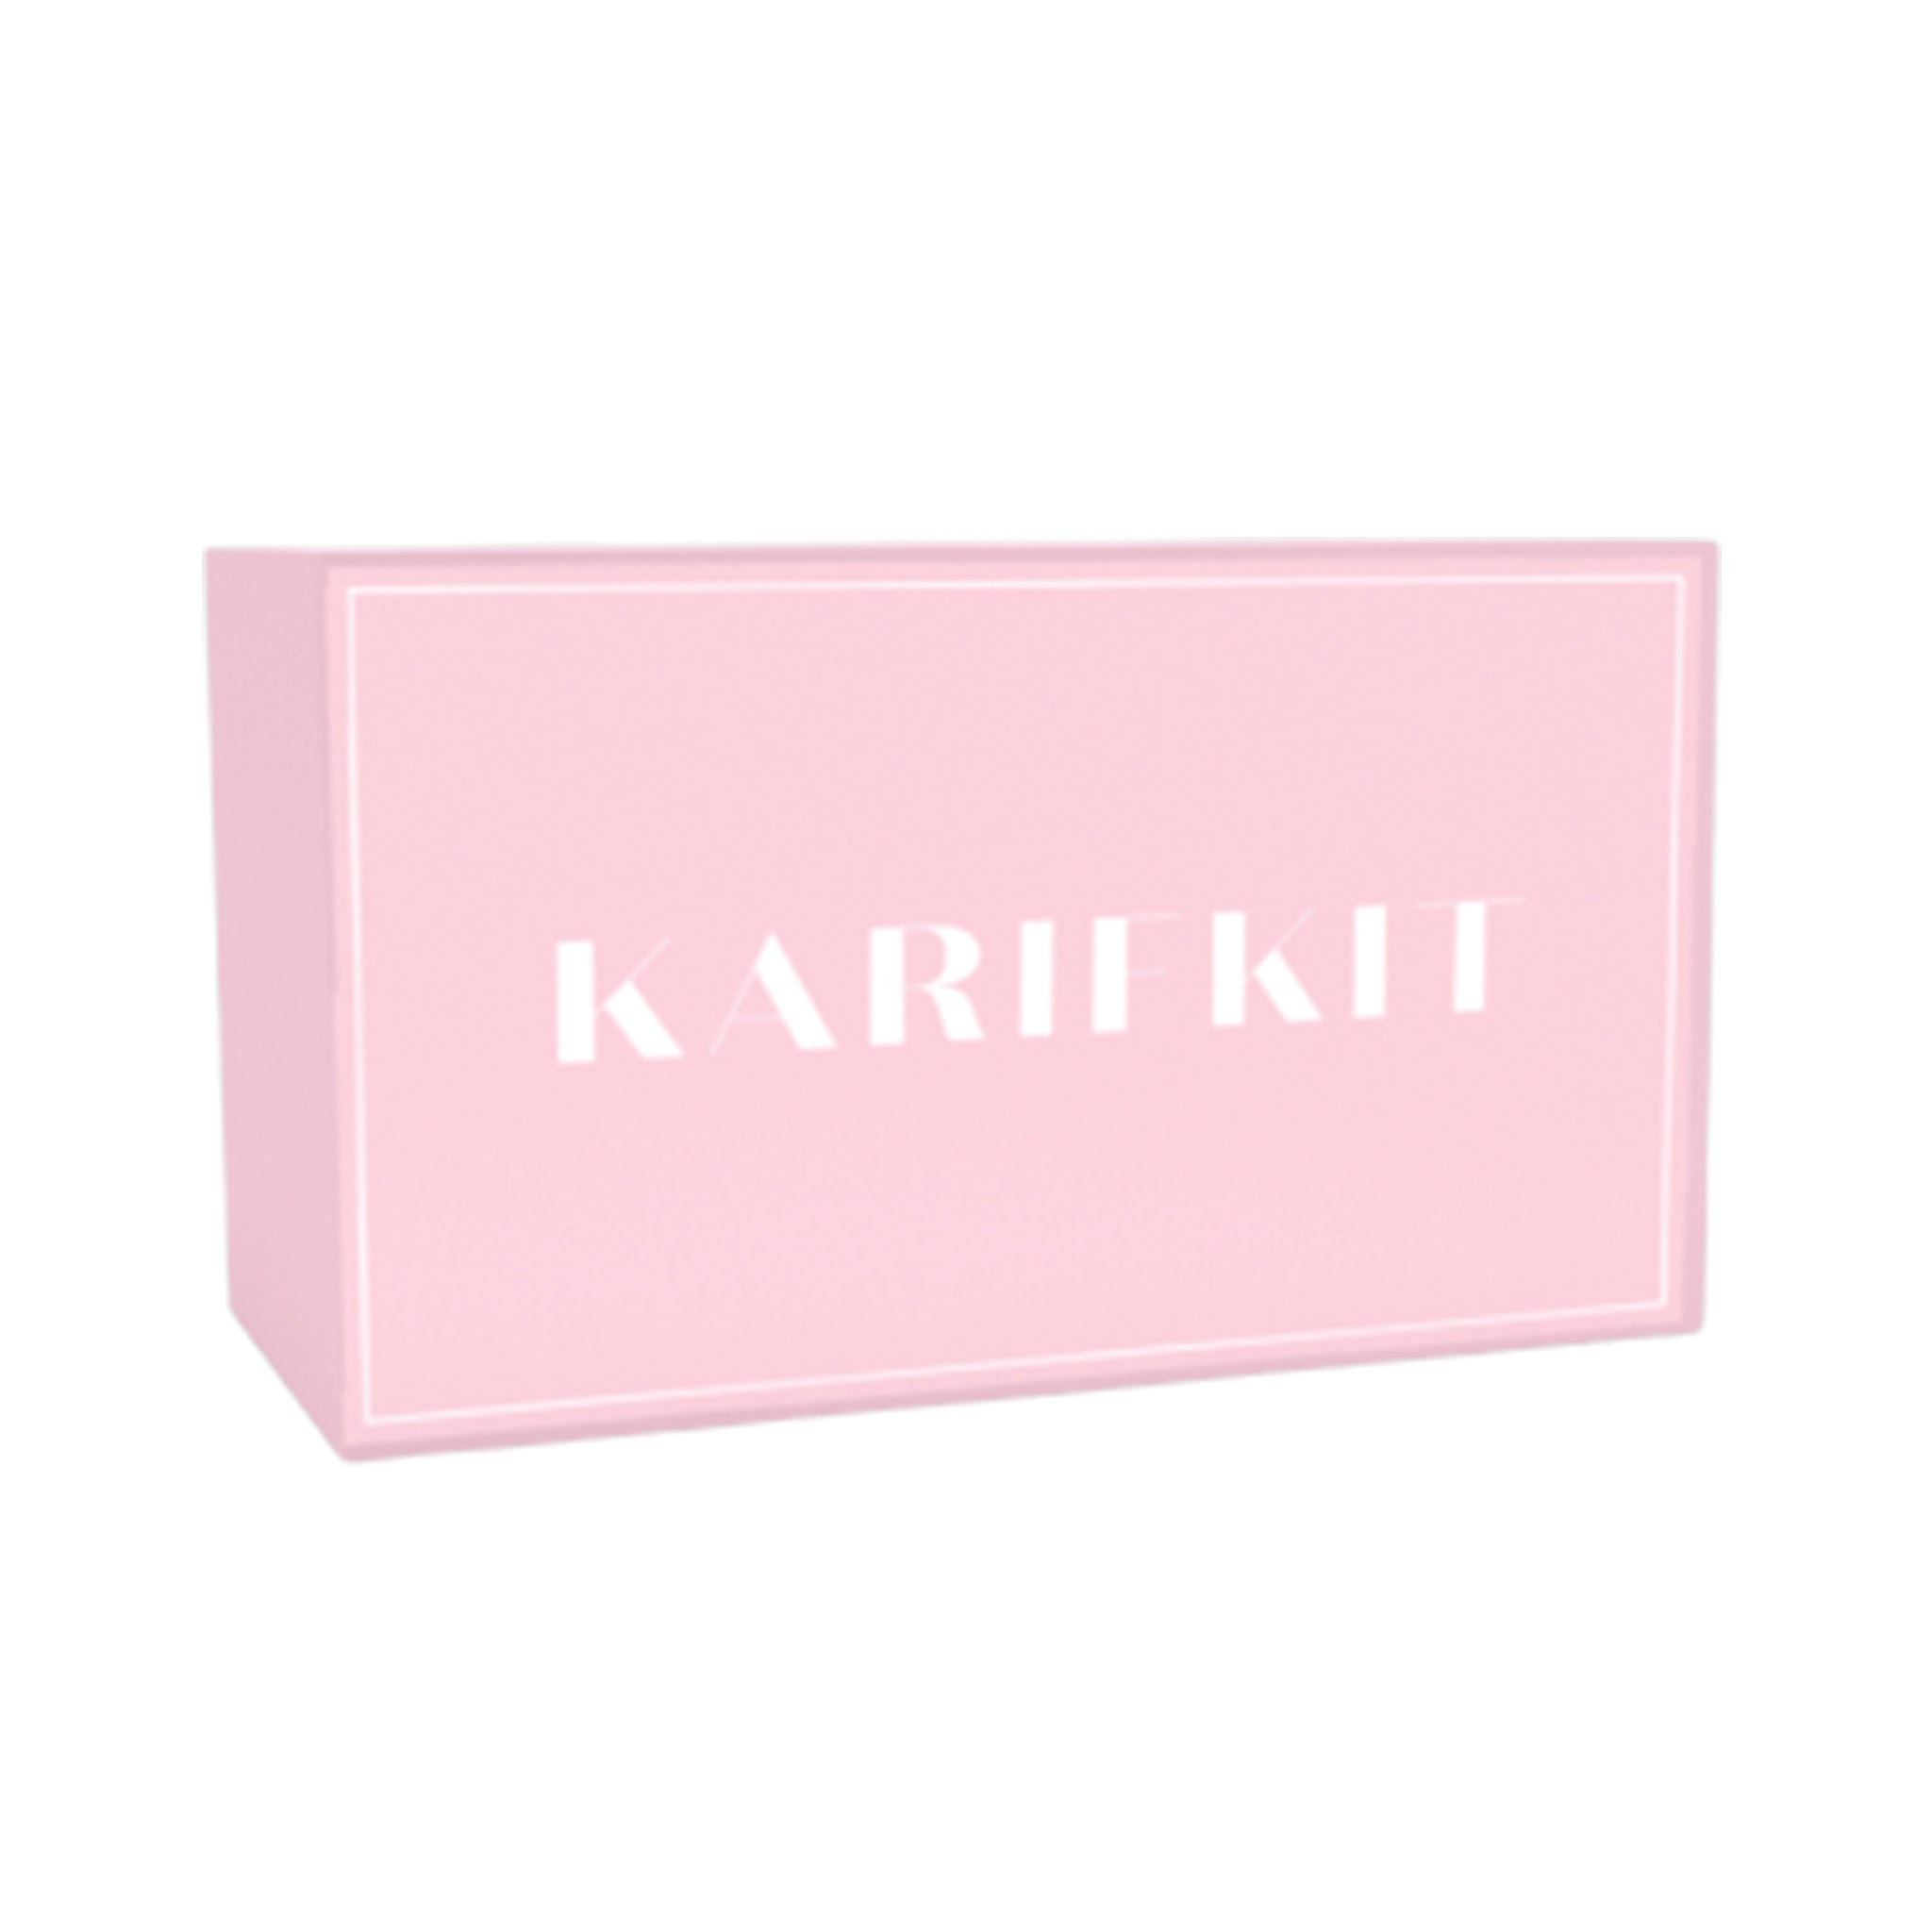 Karif Kit - Coming on December 1st